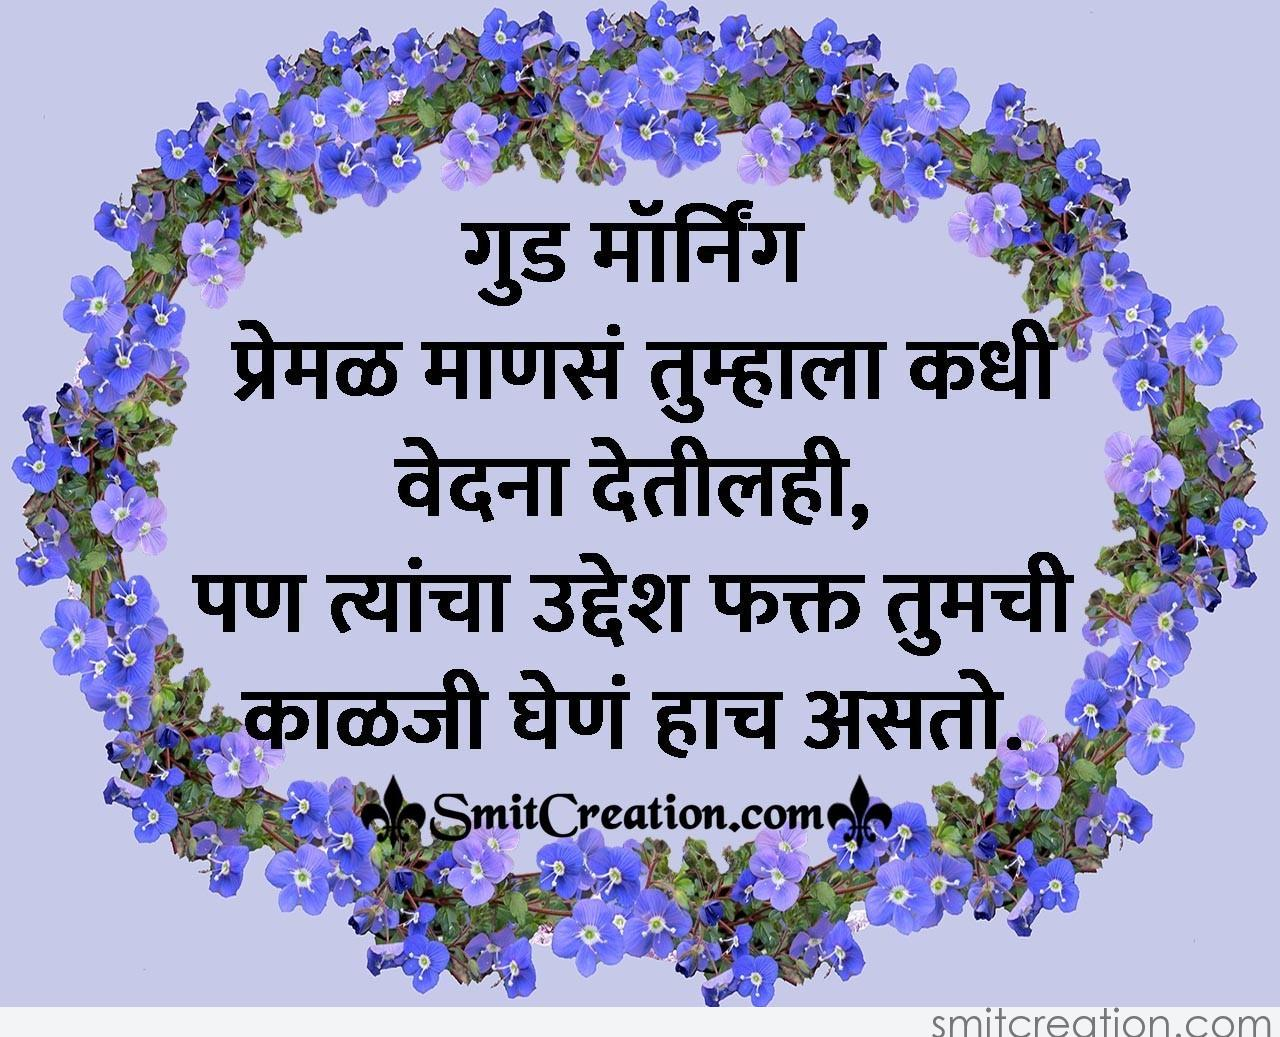 Good Morning Marathi Quotes Pictures And Graphics Smitcreationcom